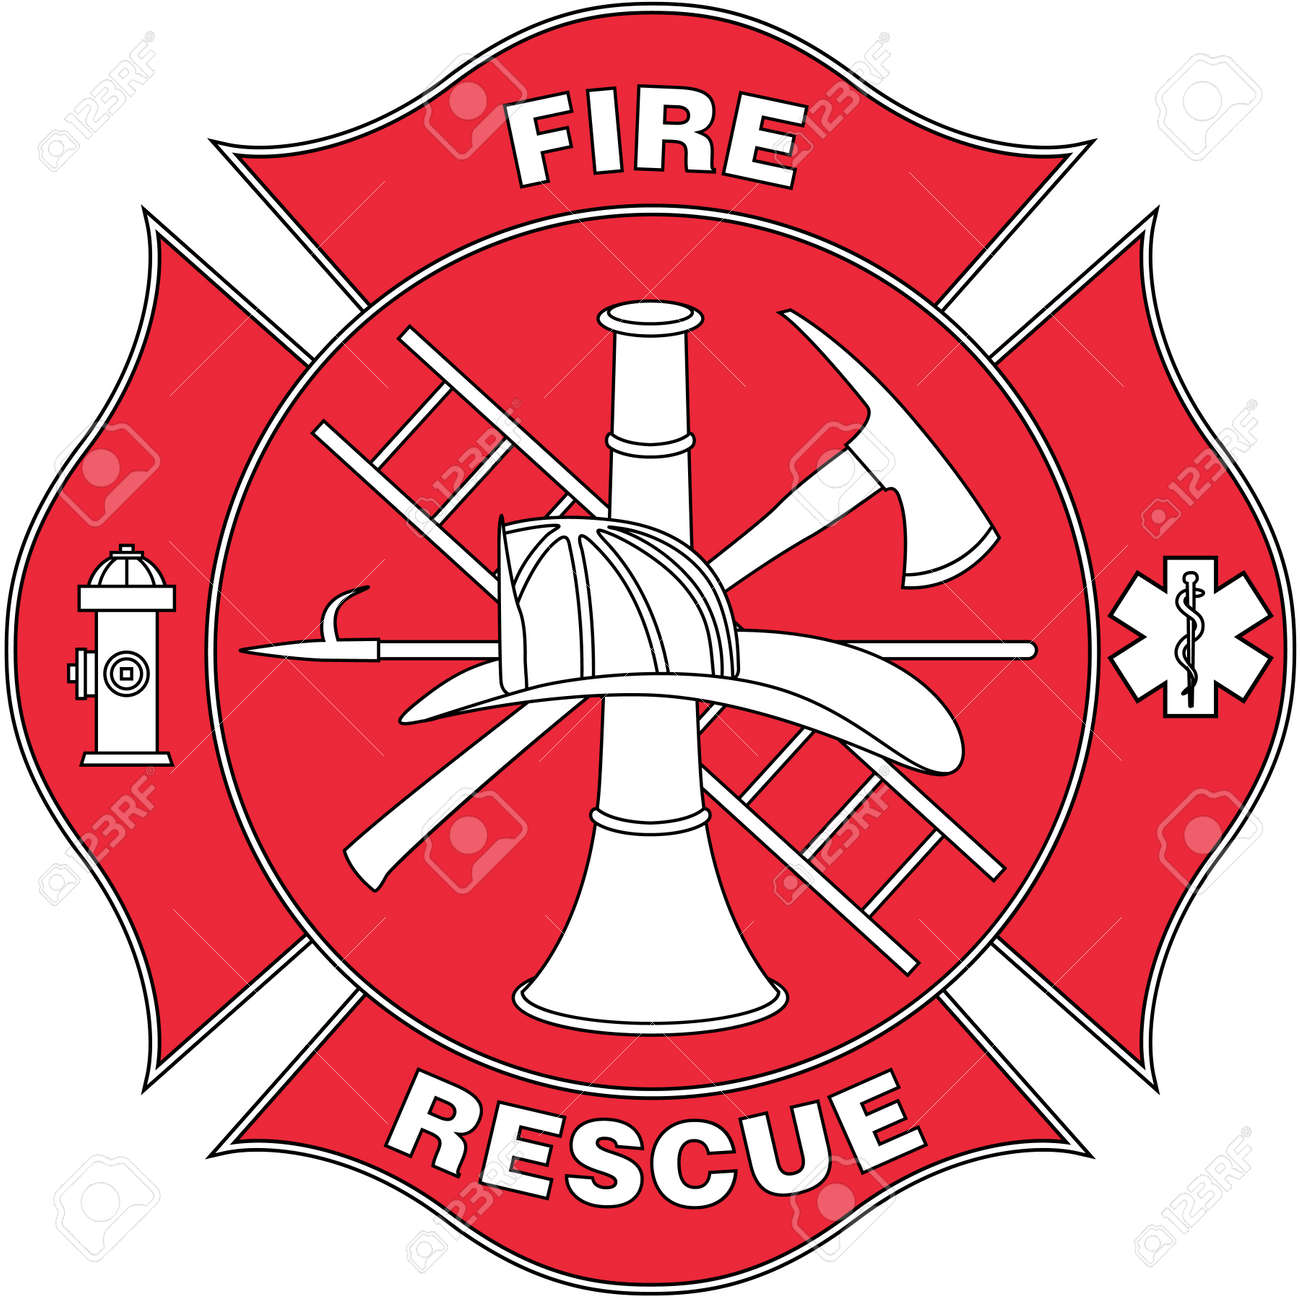 fire and rescue logo illustration royalty free cliparts vectors